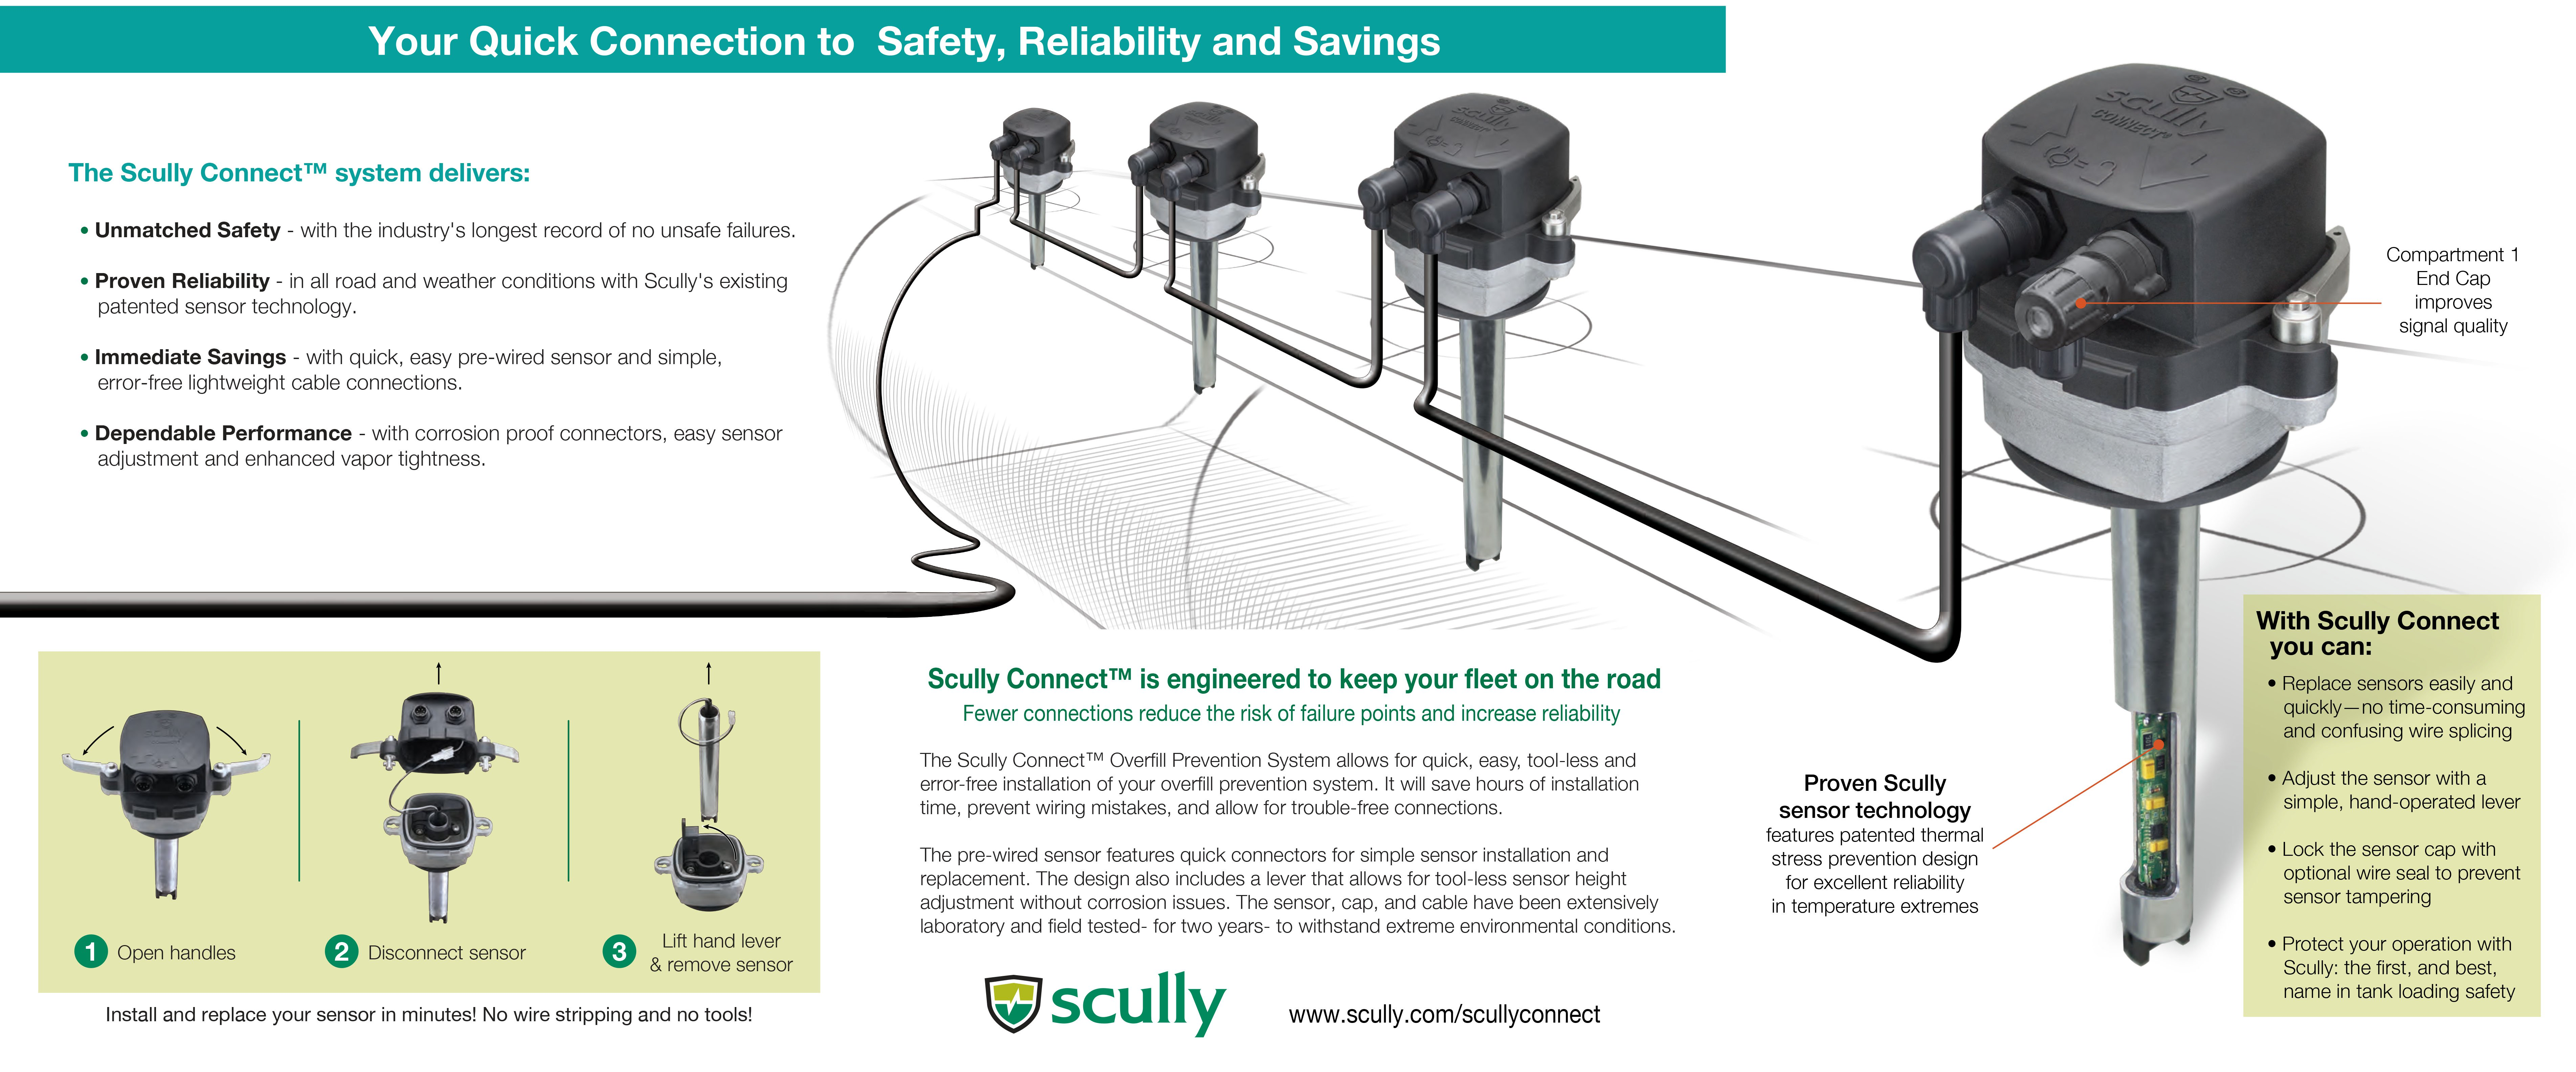 Scully Connect Sales Brochure